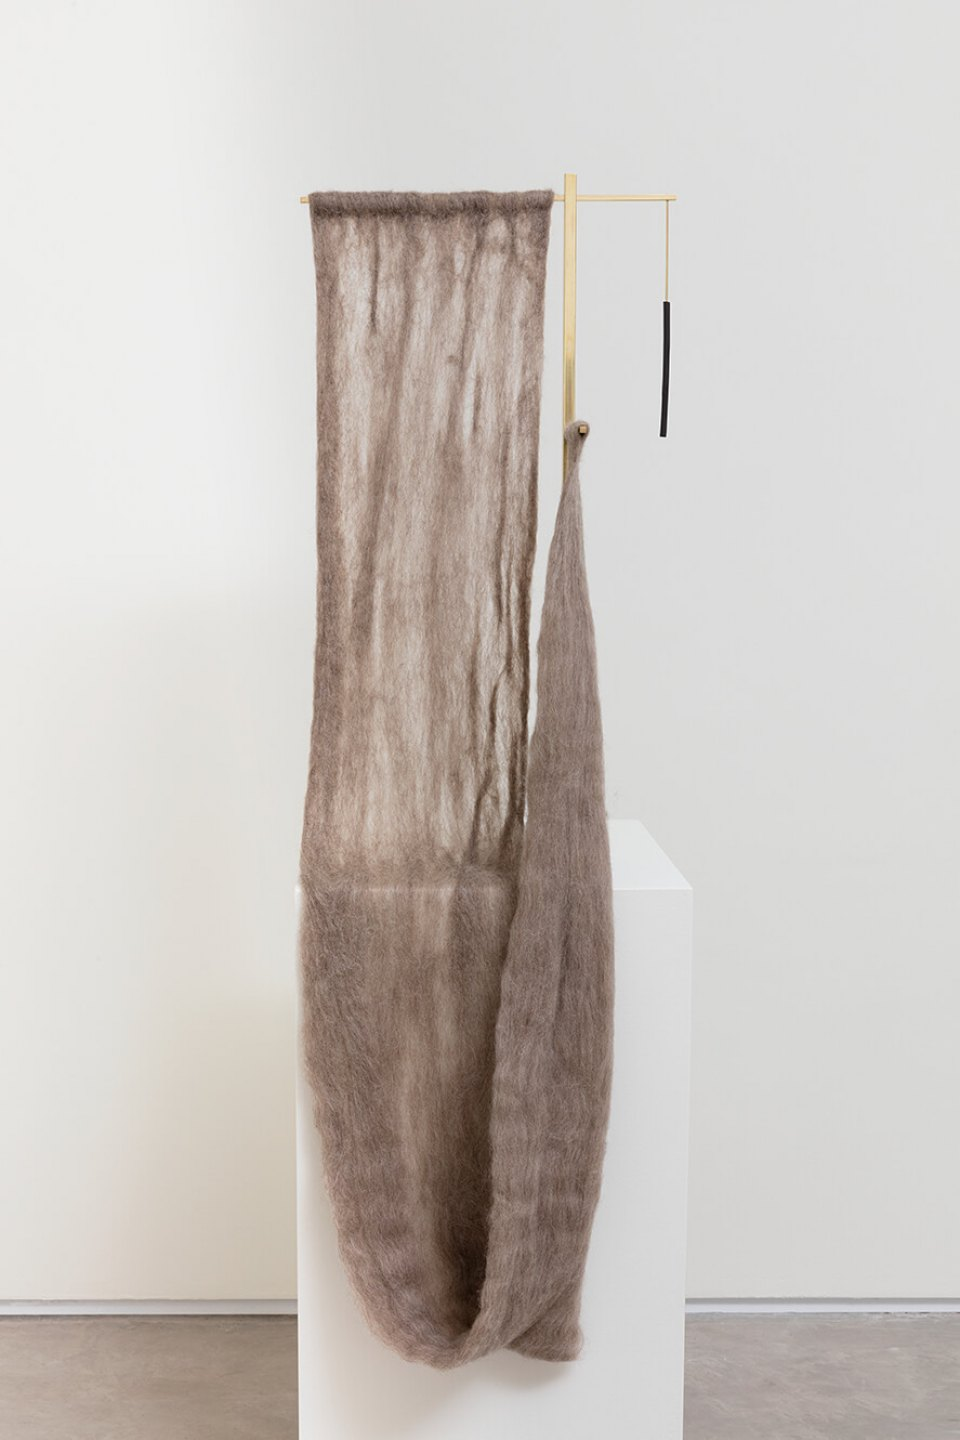 Paloma Bosquê,<em> Cross</em>, 2016, wool felted by hand, brass rods and charcoal, 120 × 14 × 38,5 cm - Mendes Wood DM